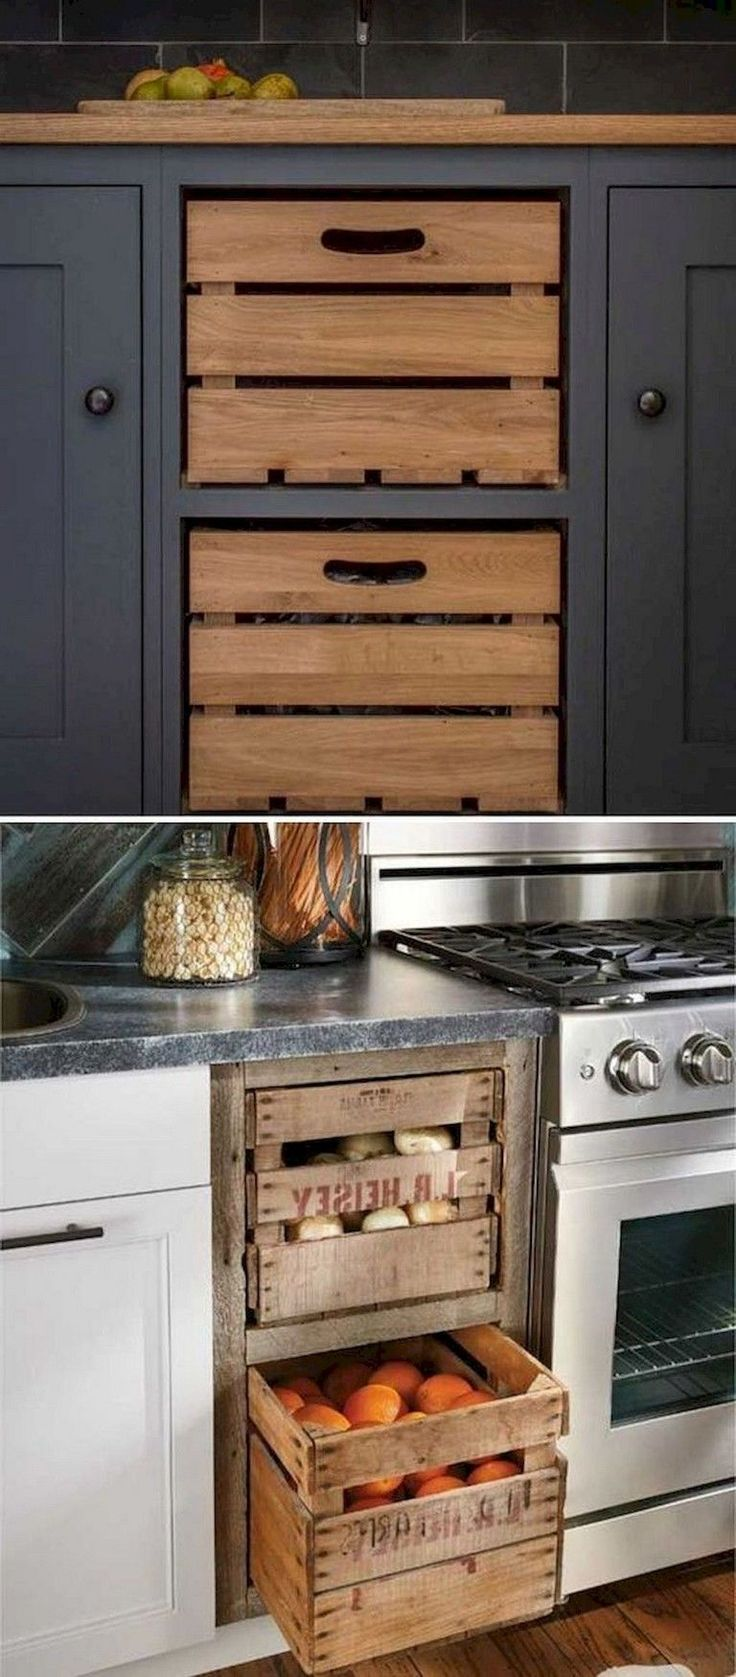 Photo of Kitchen Accessories You Didn't Know You Needed – Interior Design Ideas & Home Decorating Inspiration – moercar